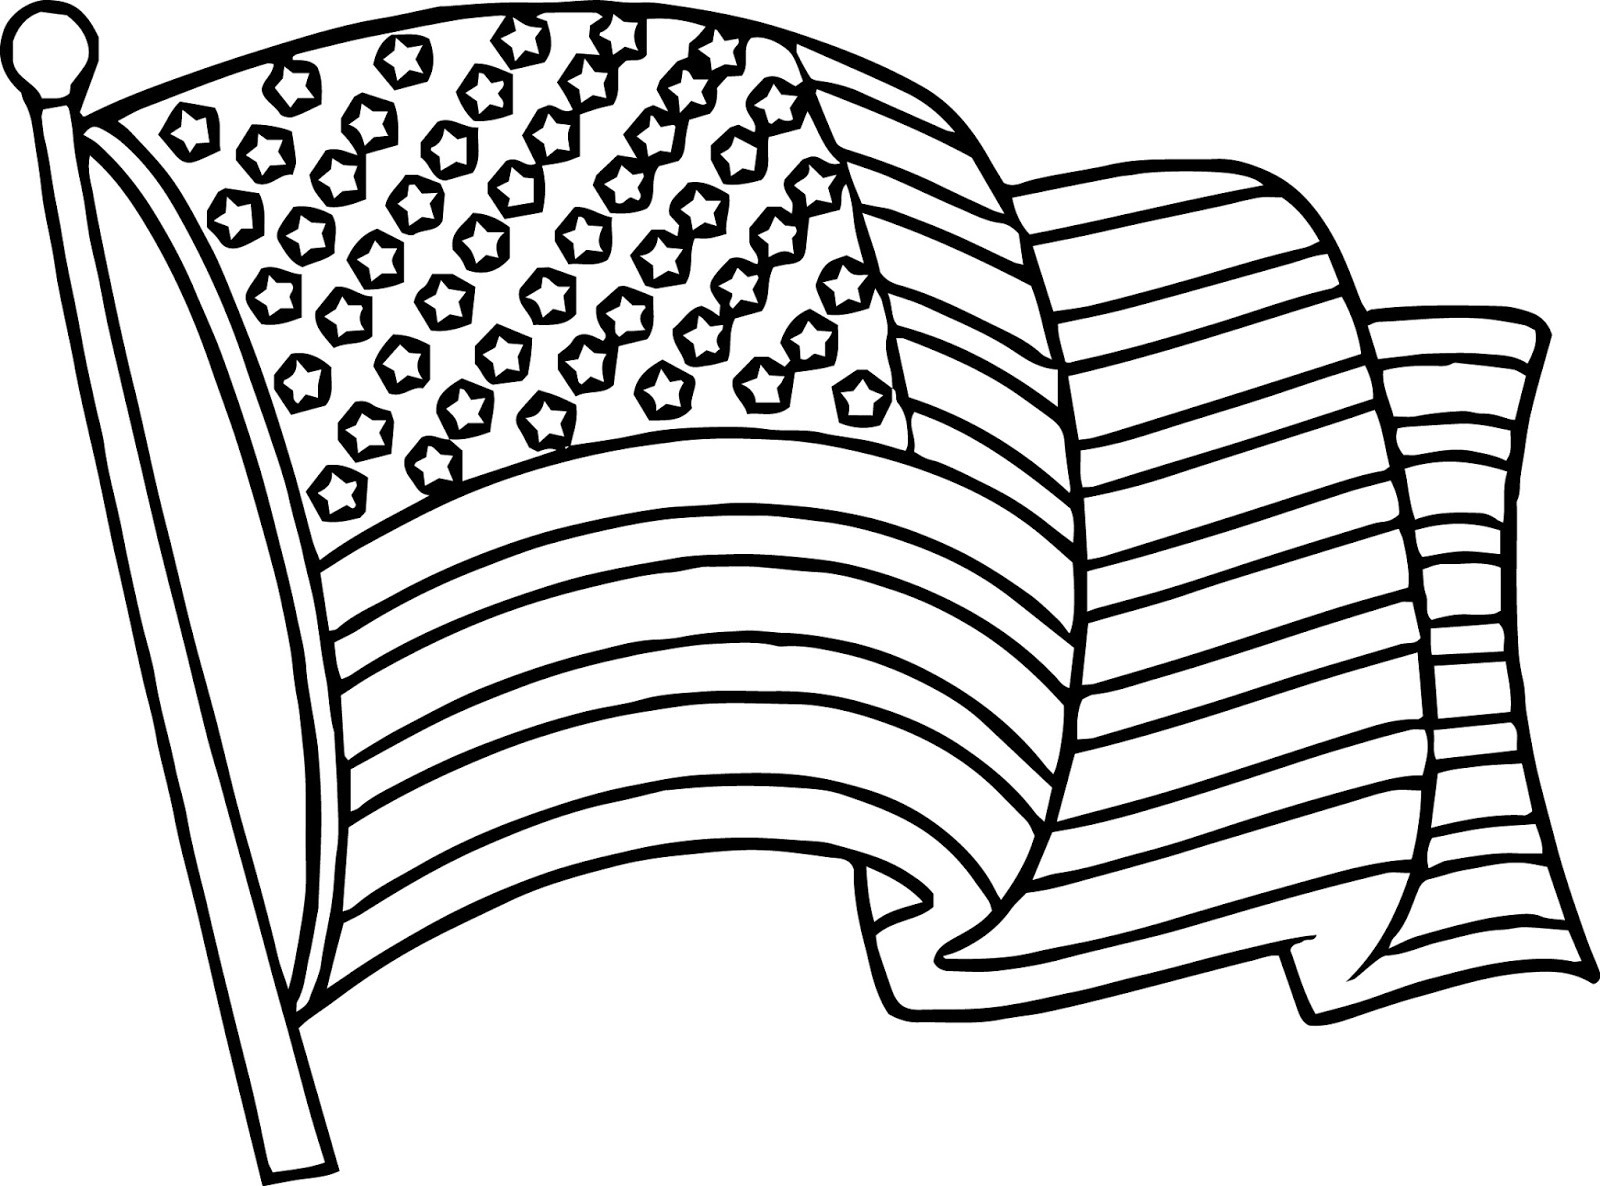 Usa Coloring Pages American Flag Coloring Pages With Usa Flag Coloring Page Coloring